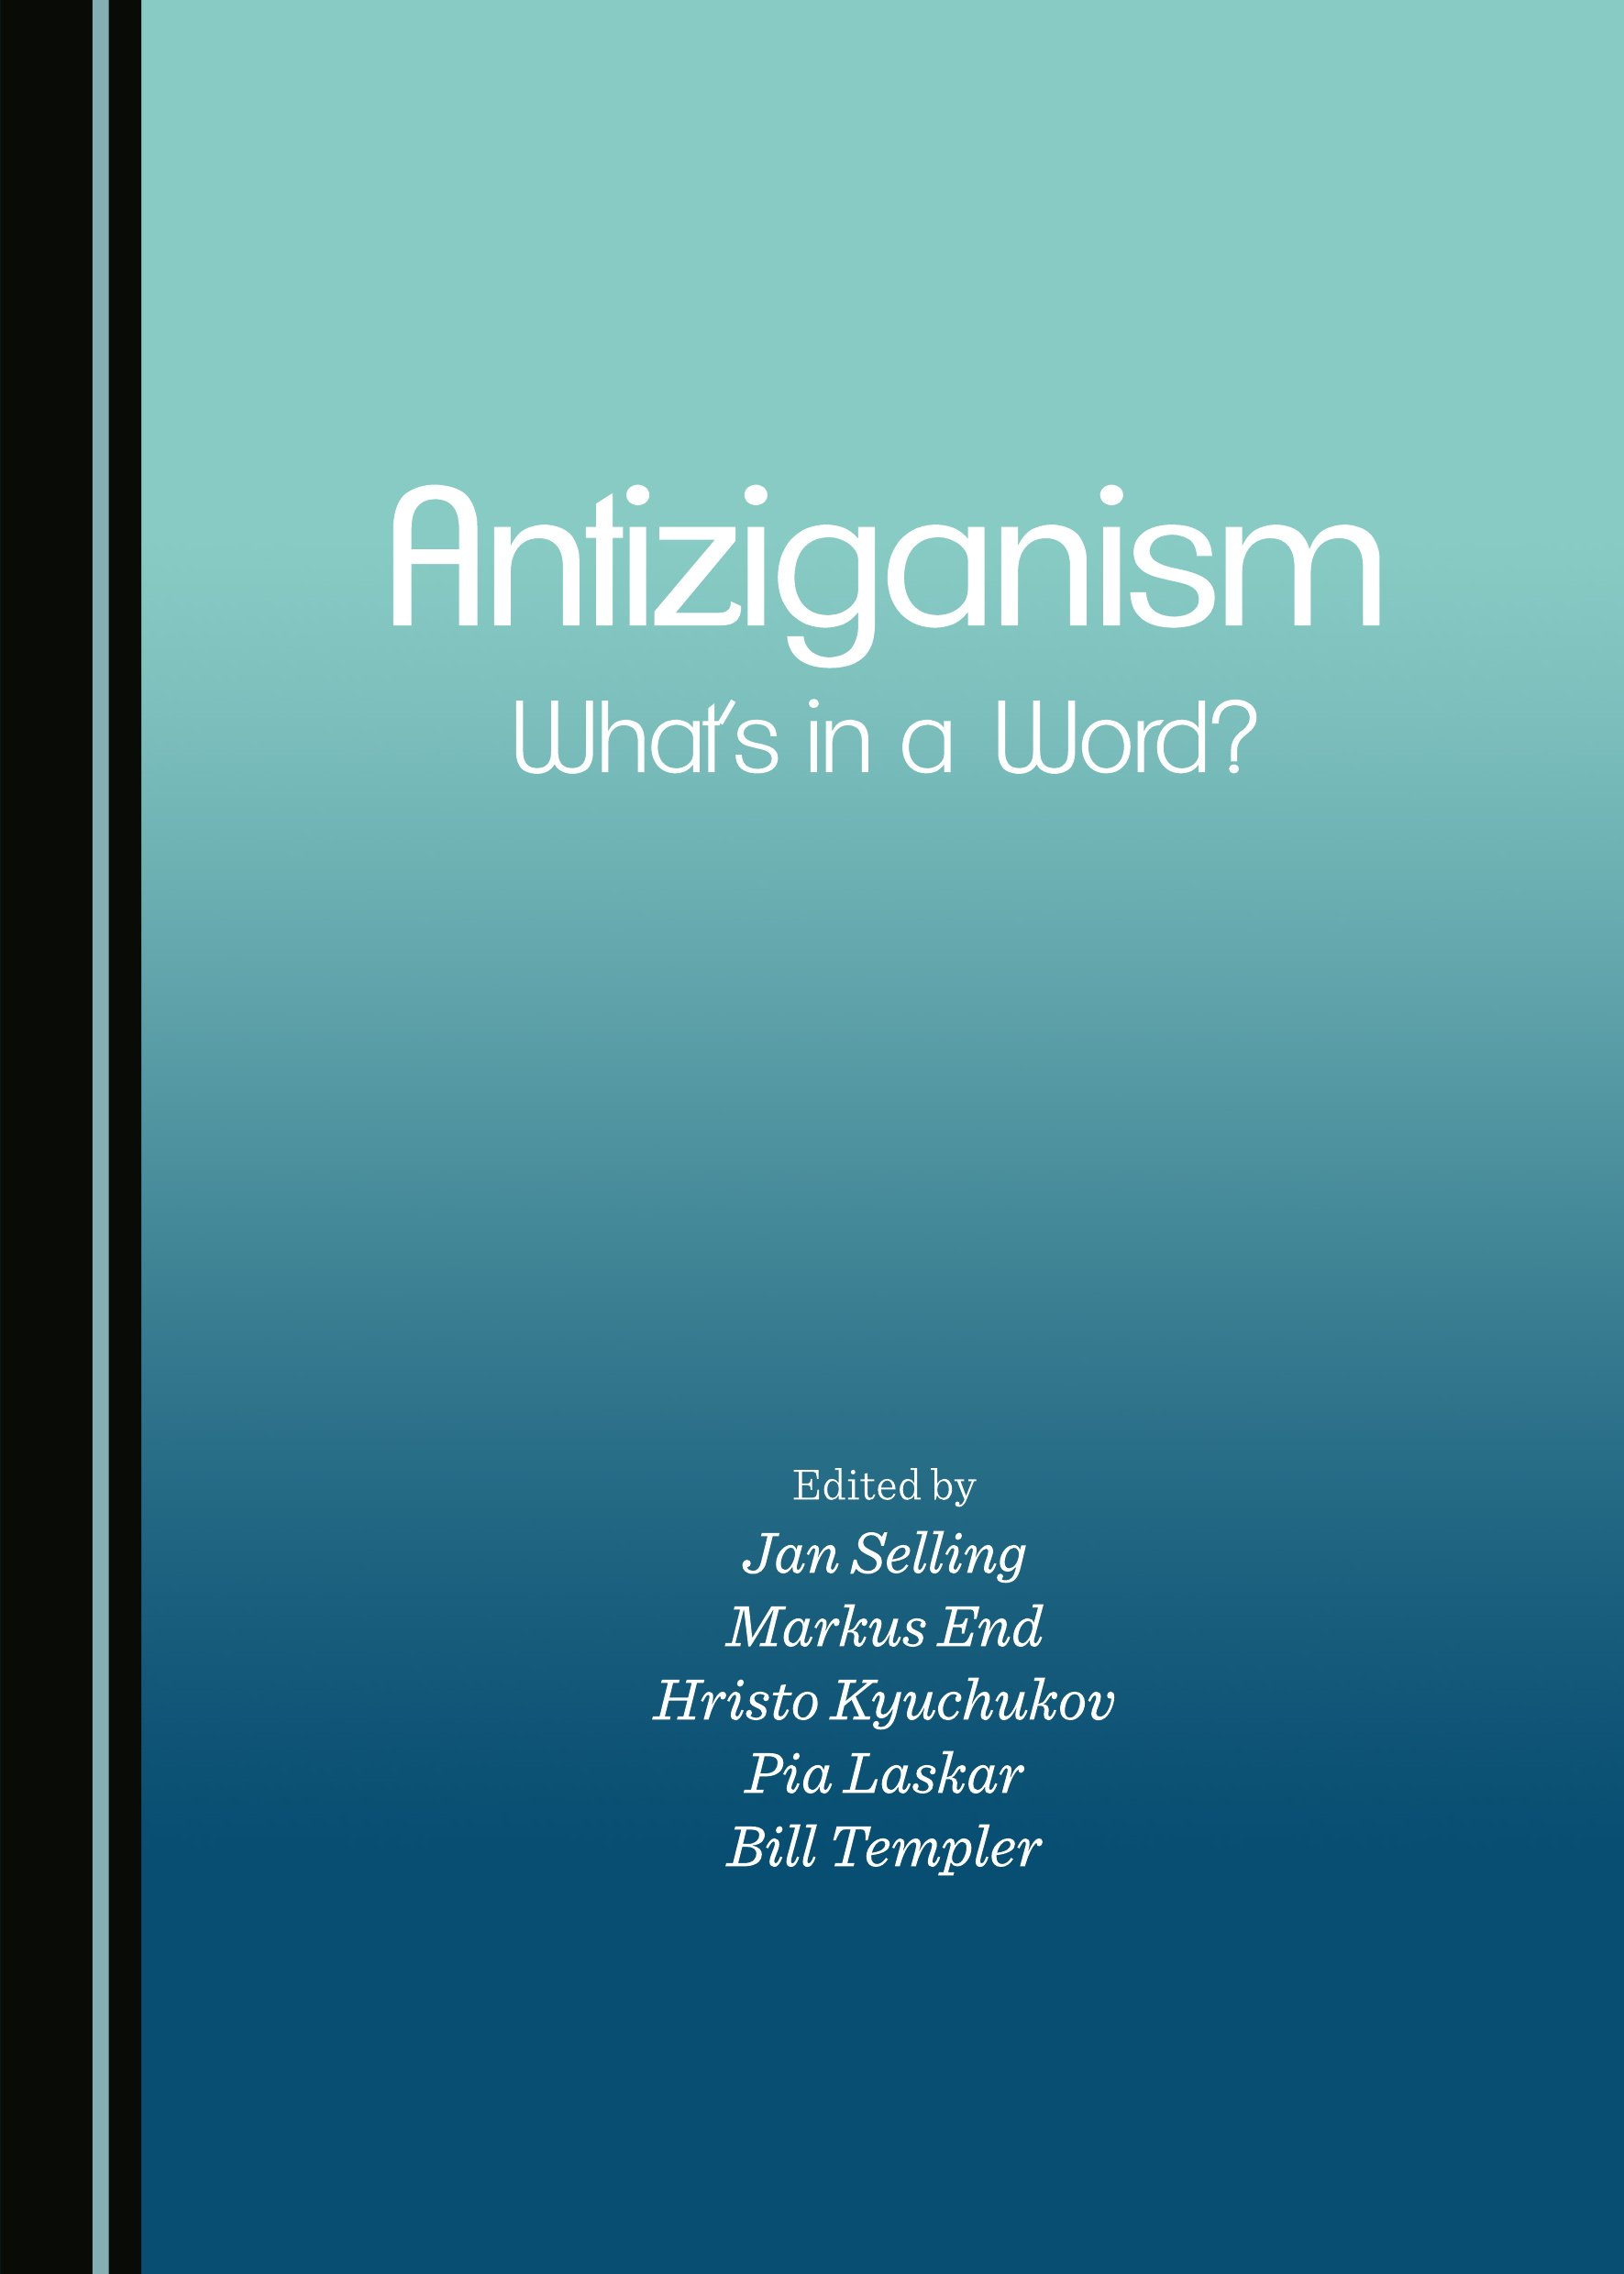 Antiziganism: What's in a Word?